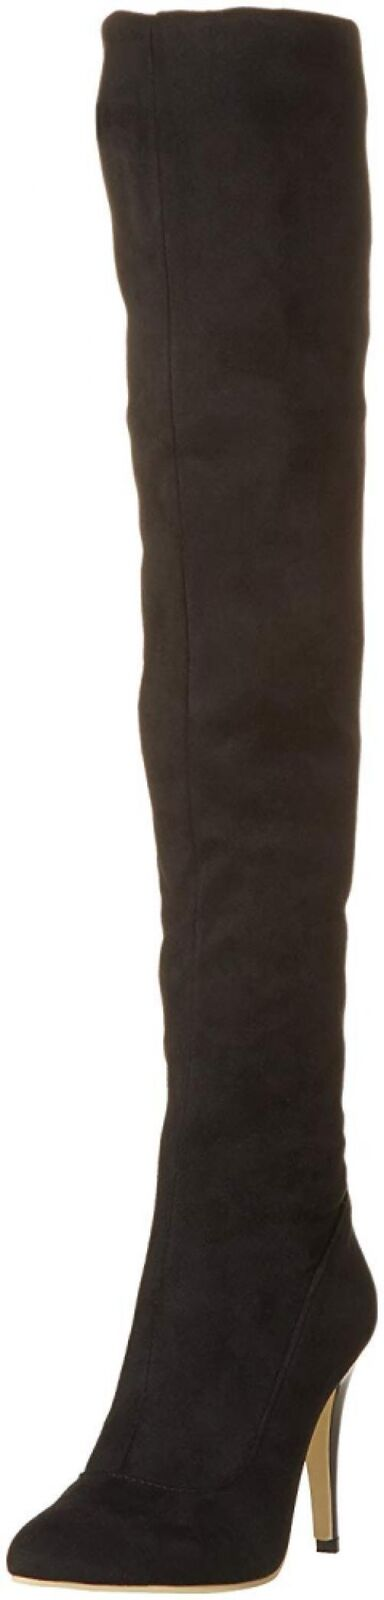 shoes'N Tale Women Over The Knee High Stretchy PU-Leather Thigh High Heel Boots